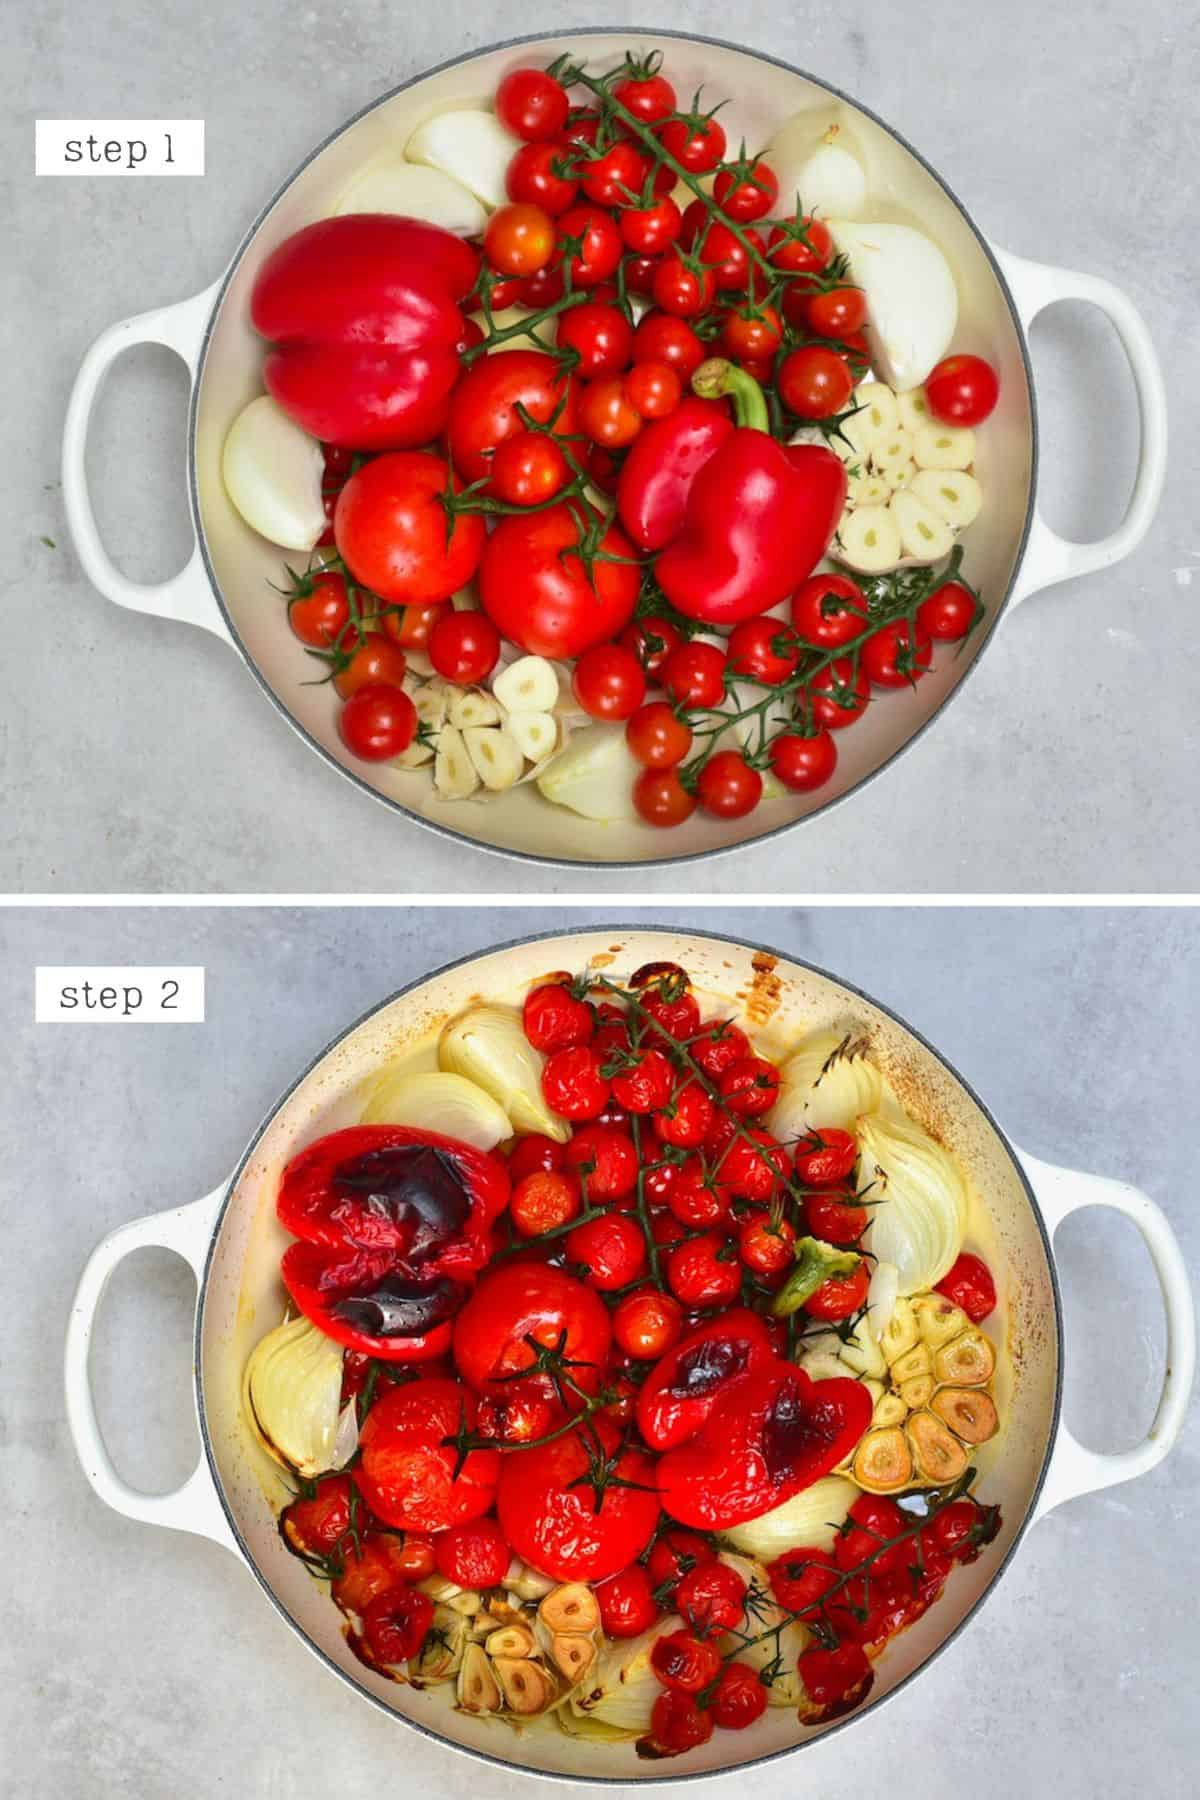 Steps for roasting tomatoes and peppers